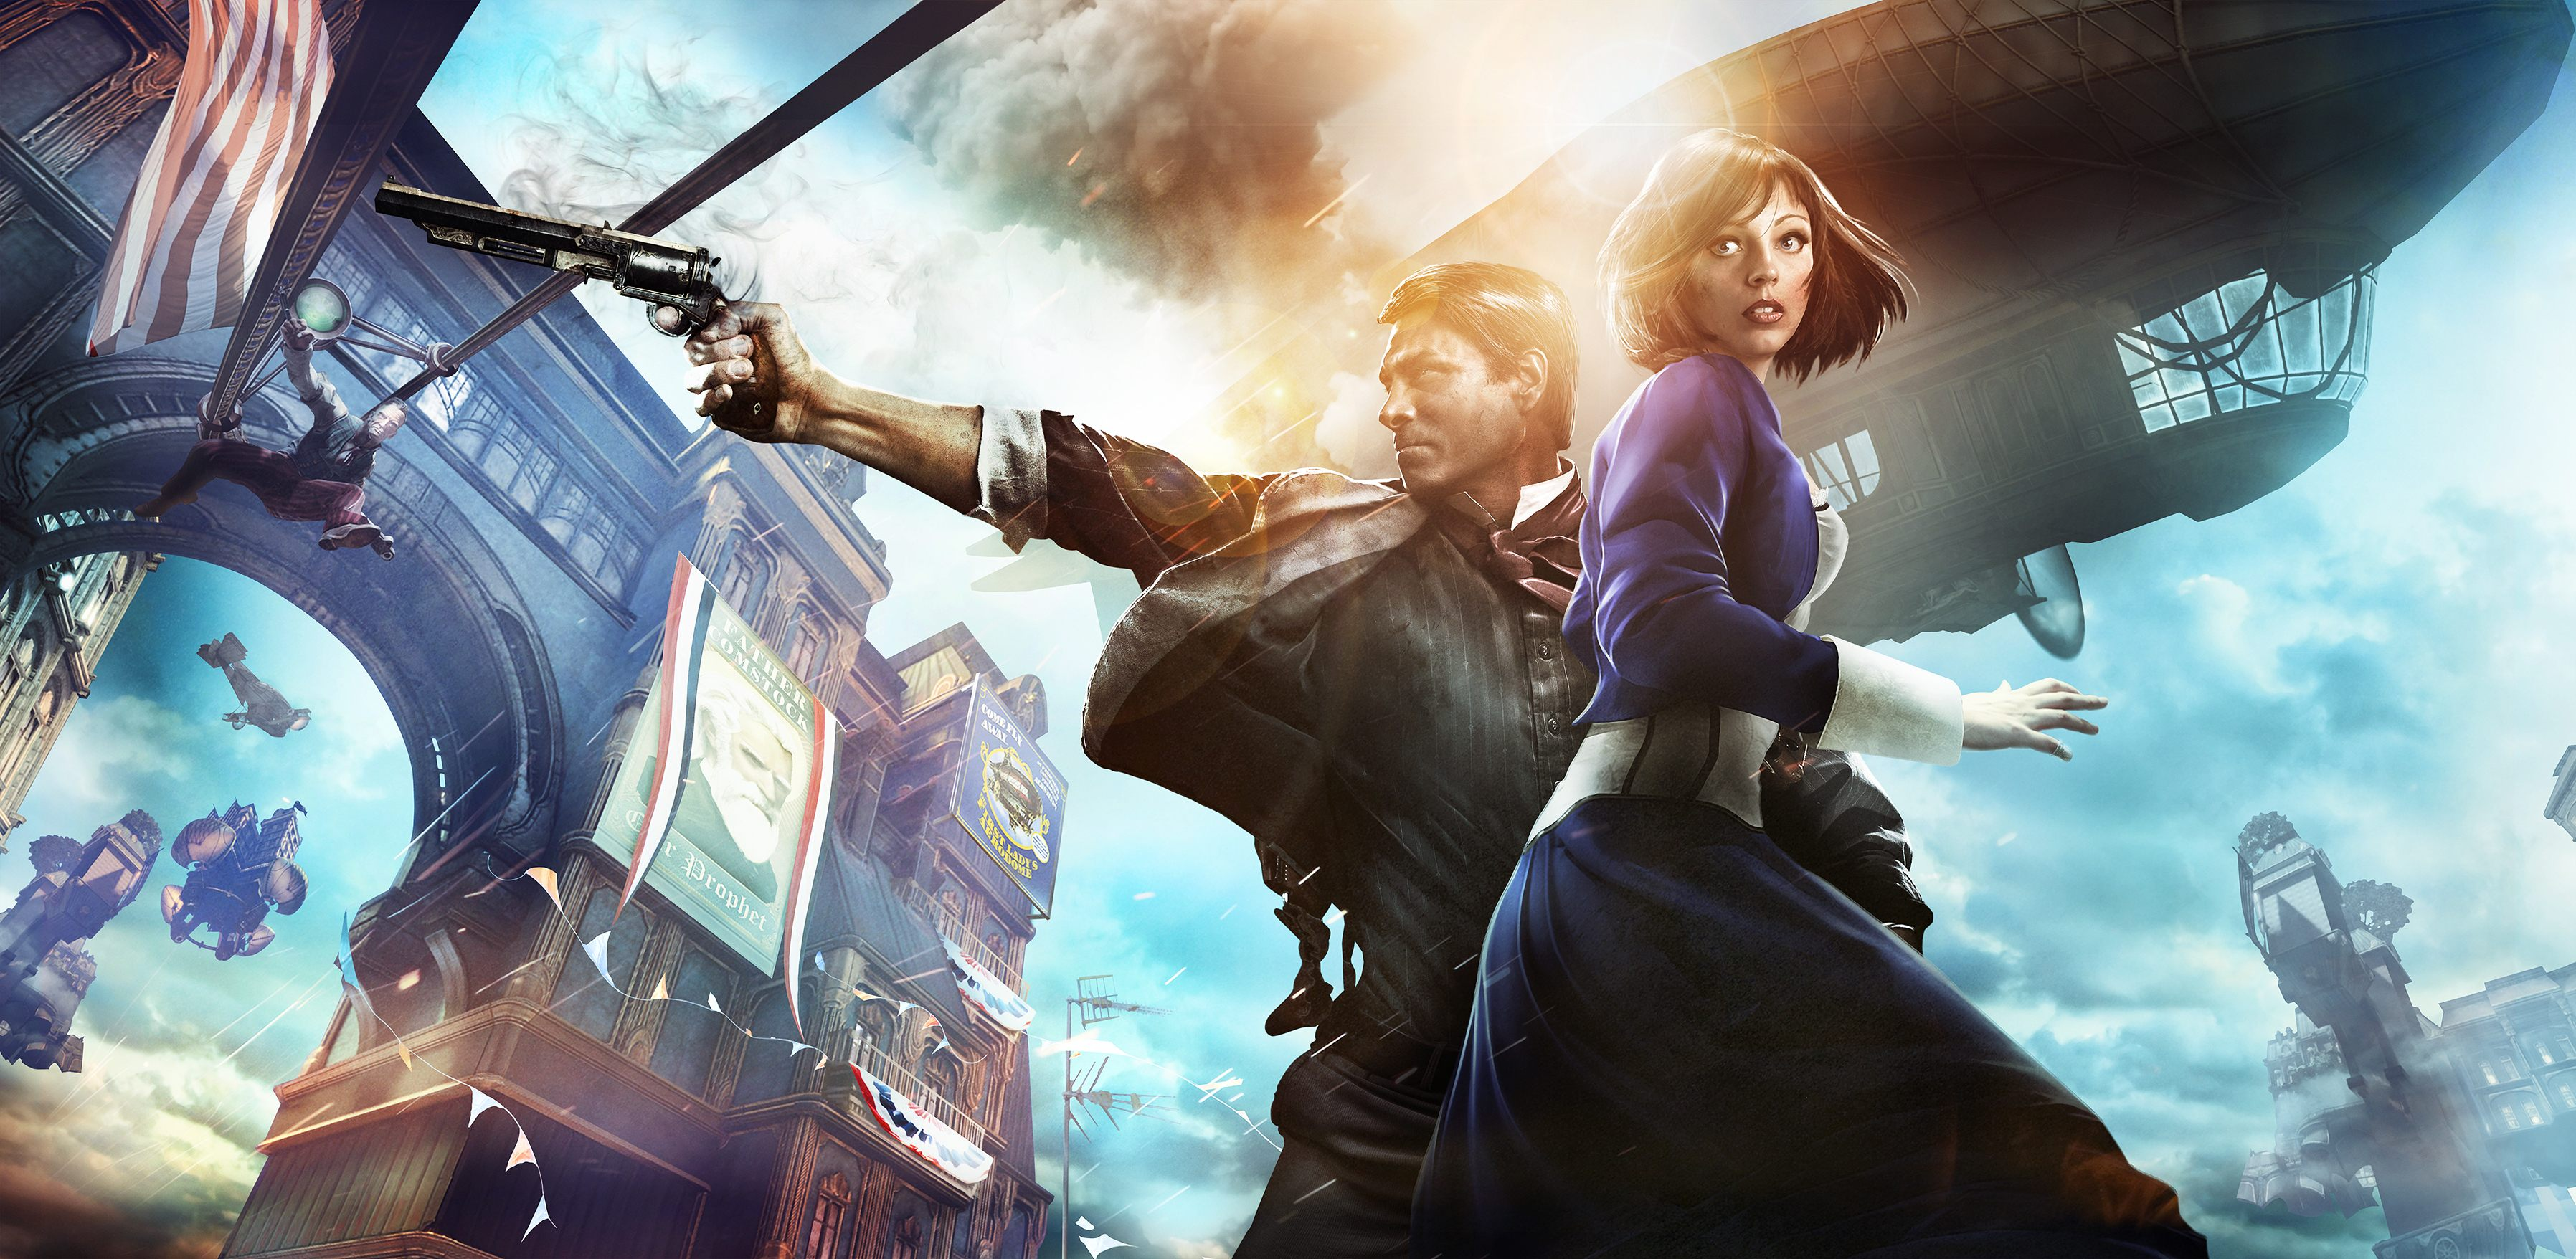 BioShock Infinite - Booker and Elizabeth - Full HD Render Art